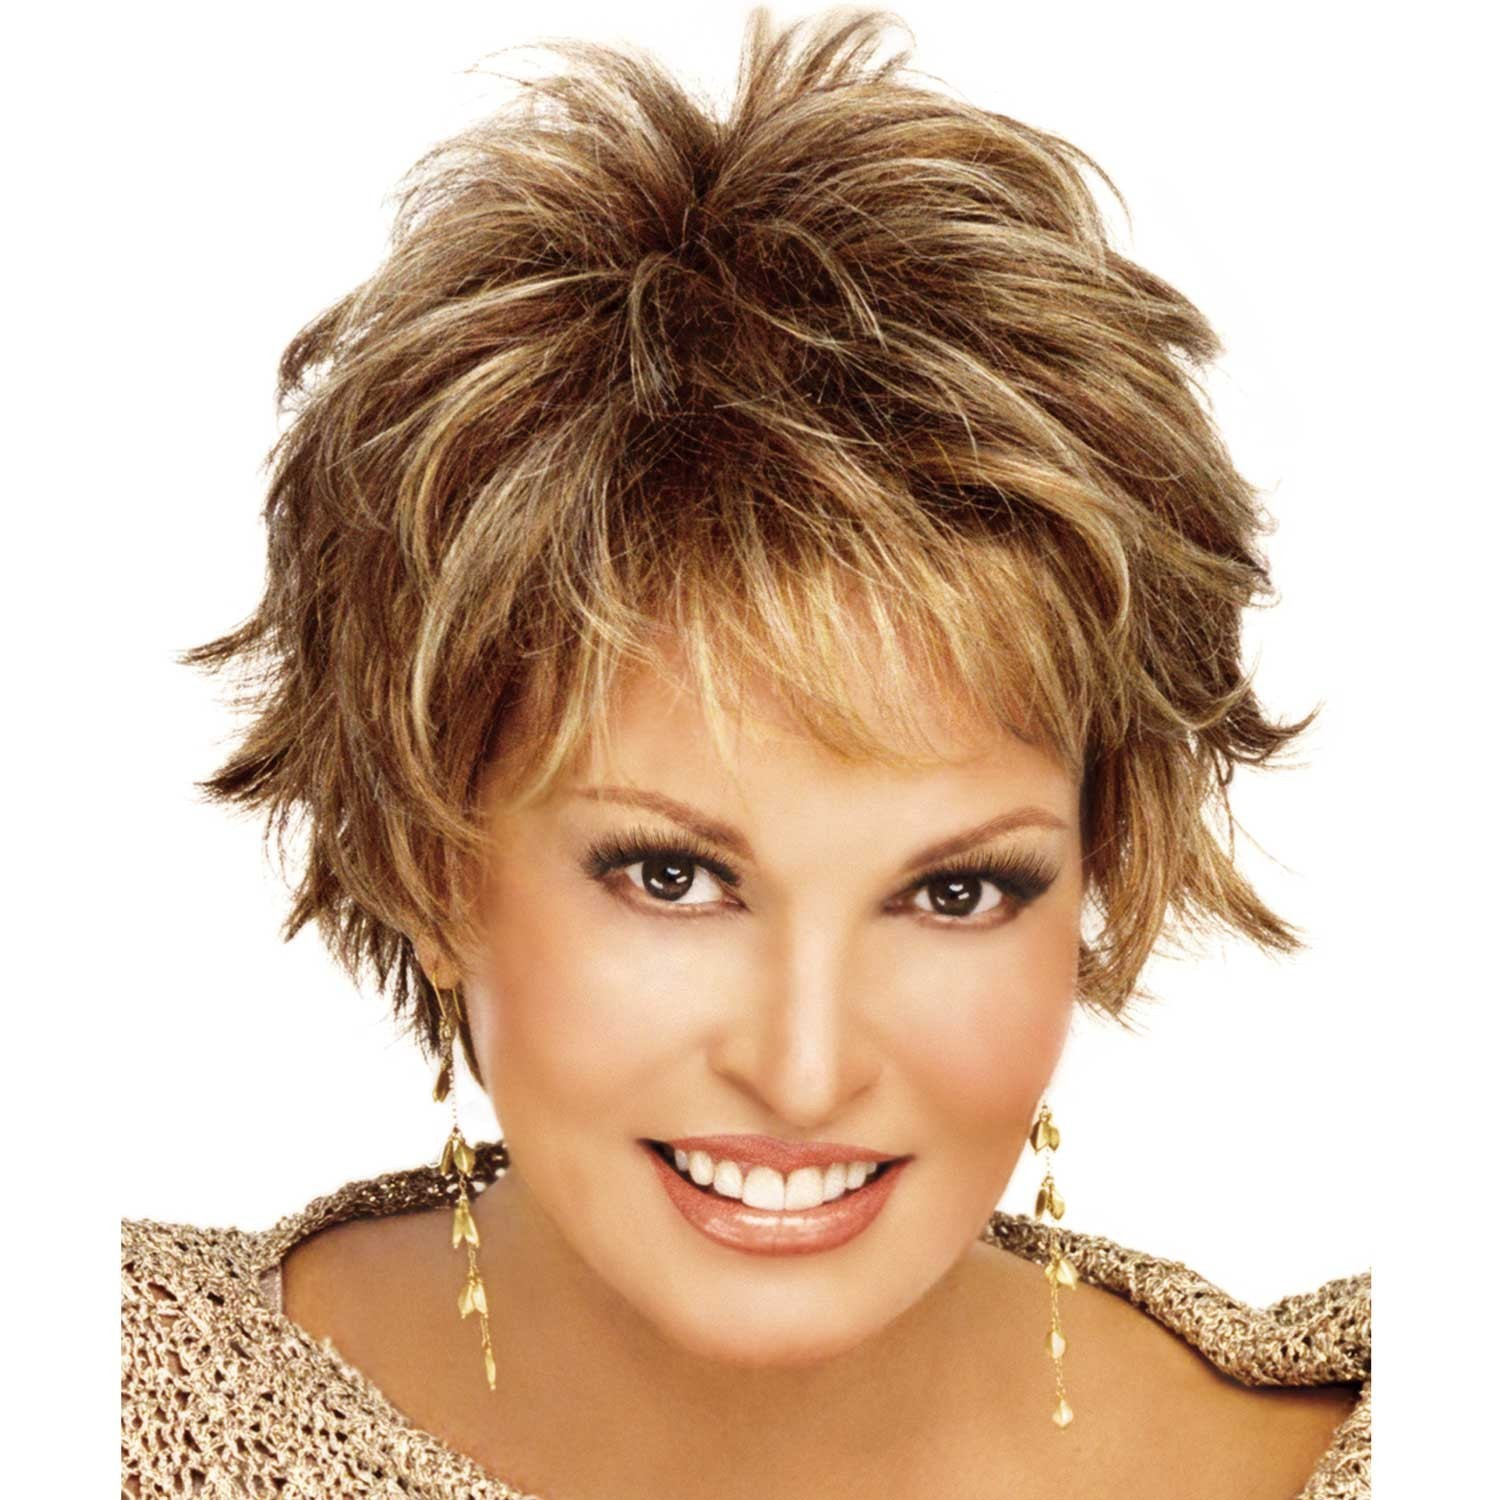 ... - Raquel Welch Hairstyles Celebrity Hairstyles By Thehairstyler Com